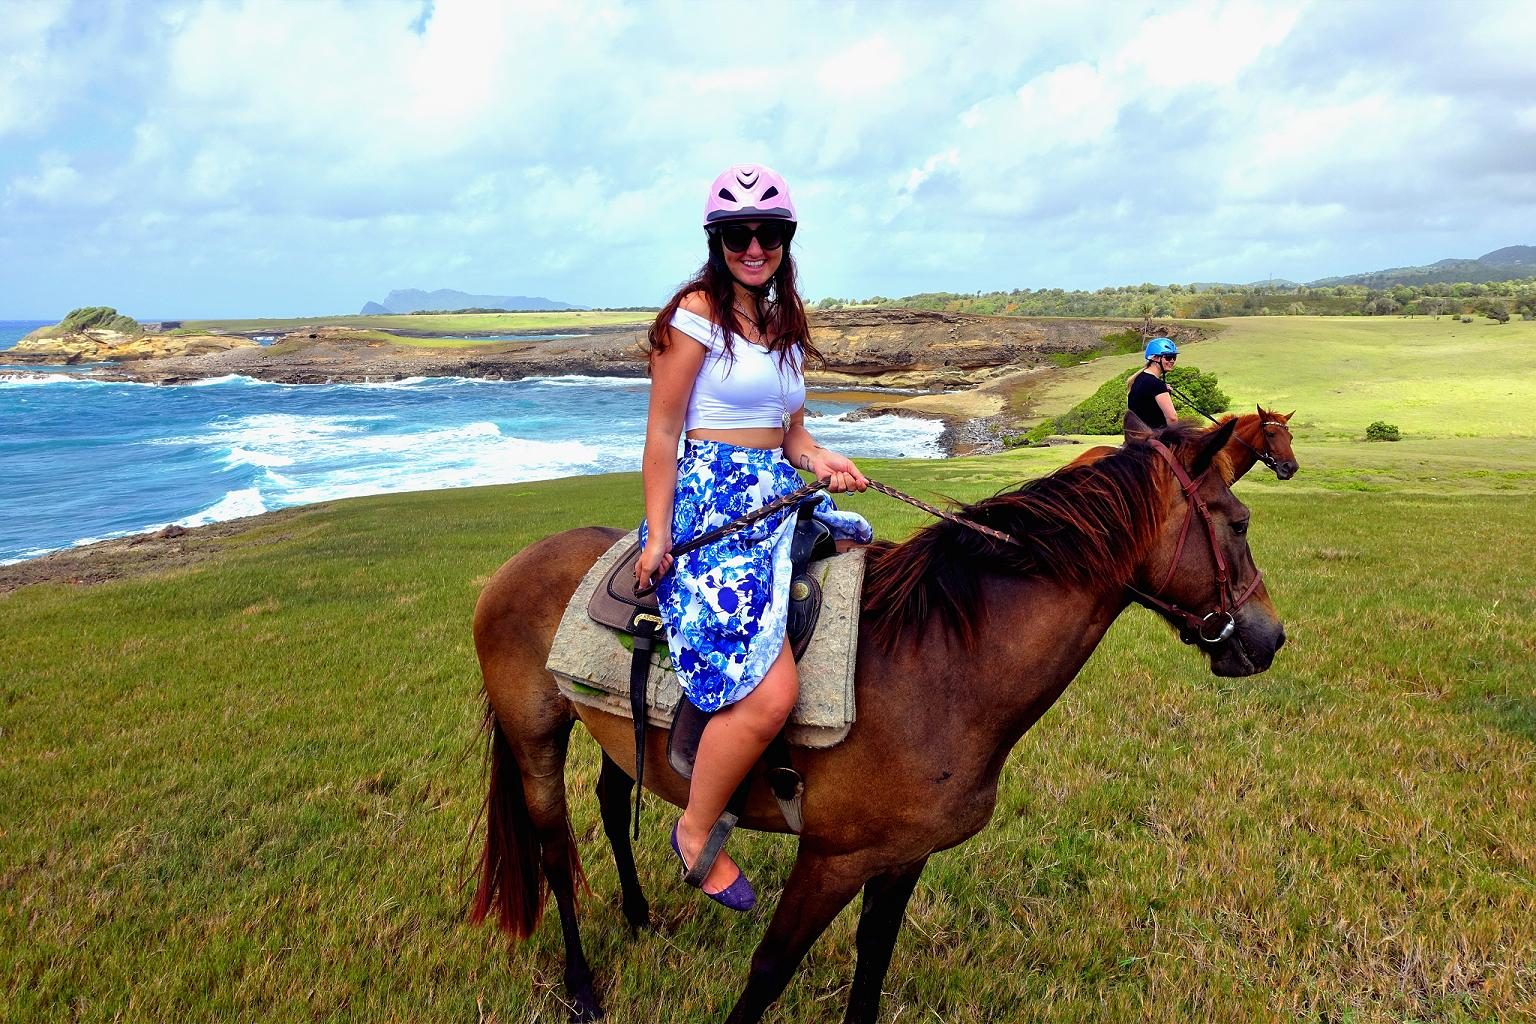 Popular Stop To Experience Horseback Riding In The Caribbean